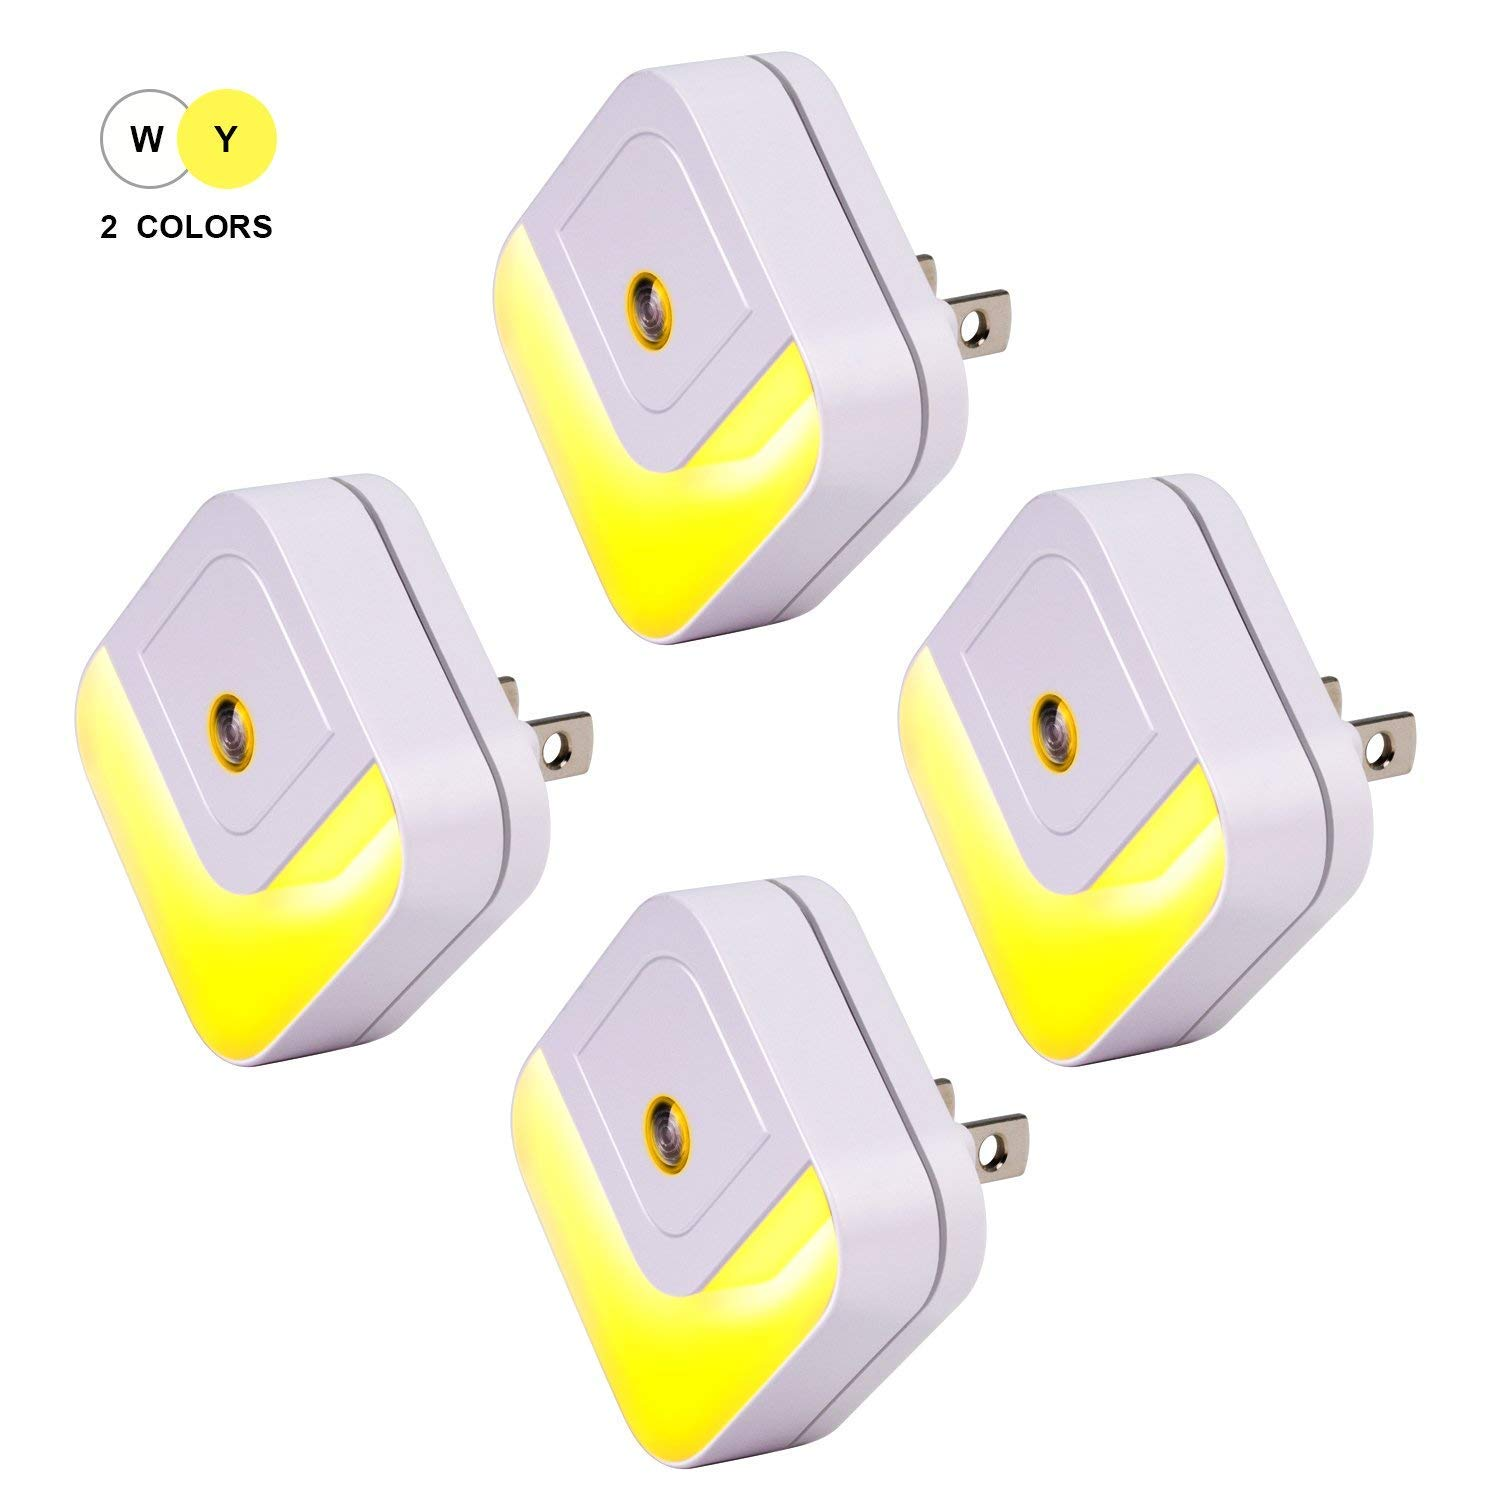 Plug-in Night Light,ViLSOM Led Night Light with Auto Dusk to Dawn Sensor and Dual Color Temperature Night Lights for Kids Room,Bedroom,Stairs,4-Pack.